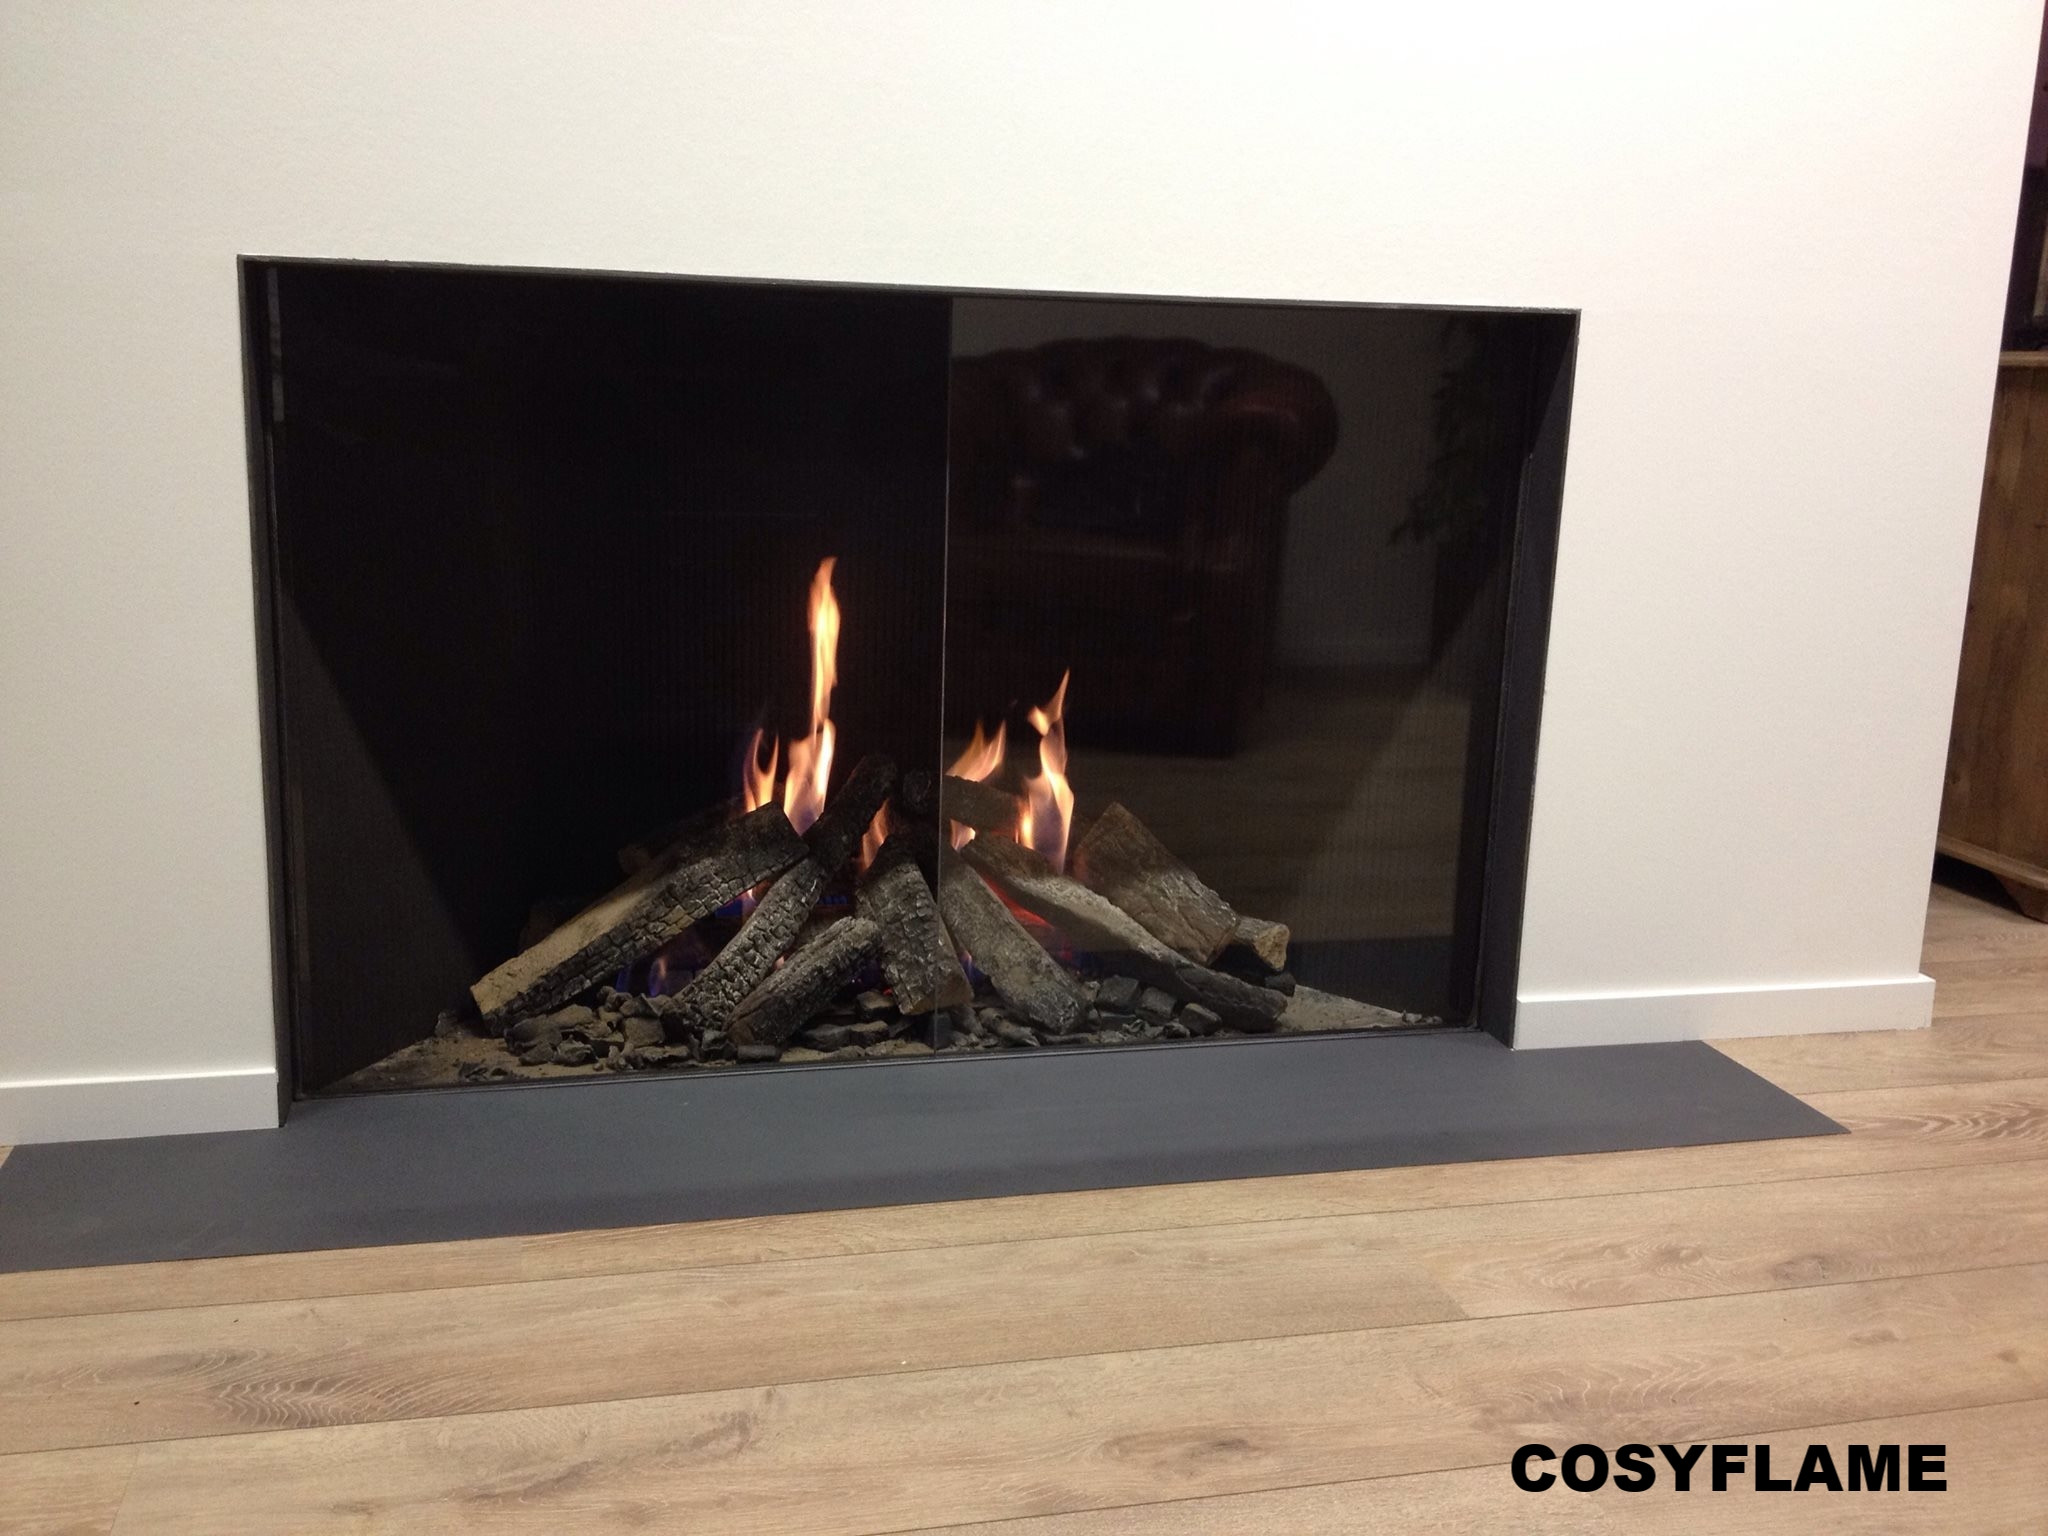 Cosyflame-HD-Glas-file-59.jpeg